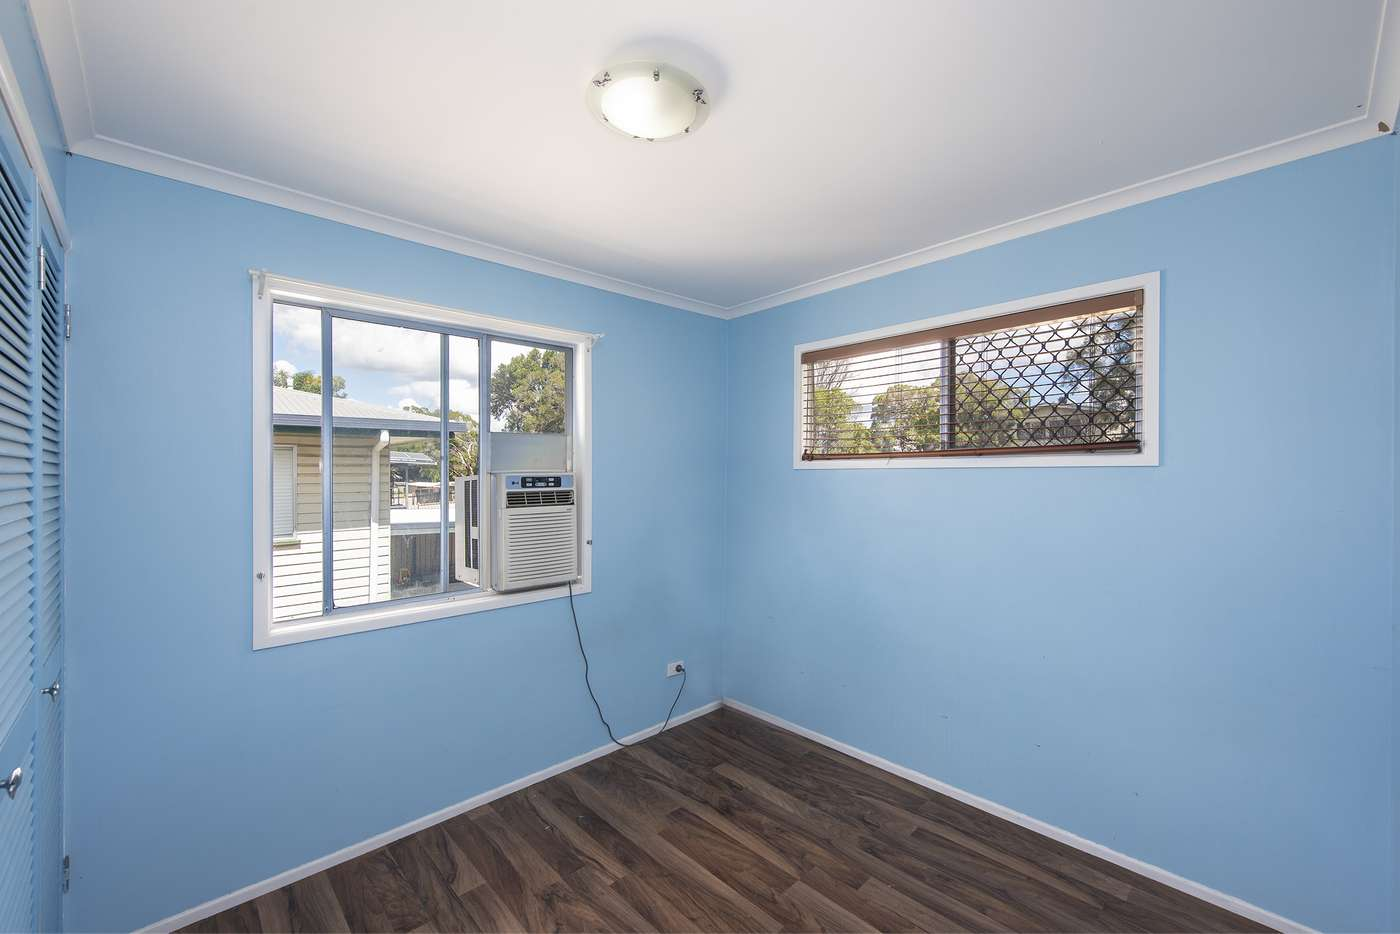 Sixth view of Homely house listing, 5 Langridge St, Raceview QLD 4305